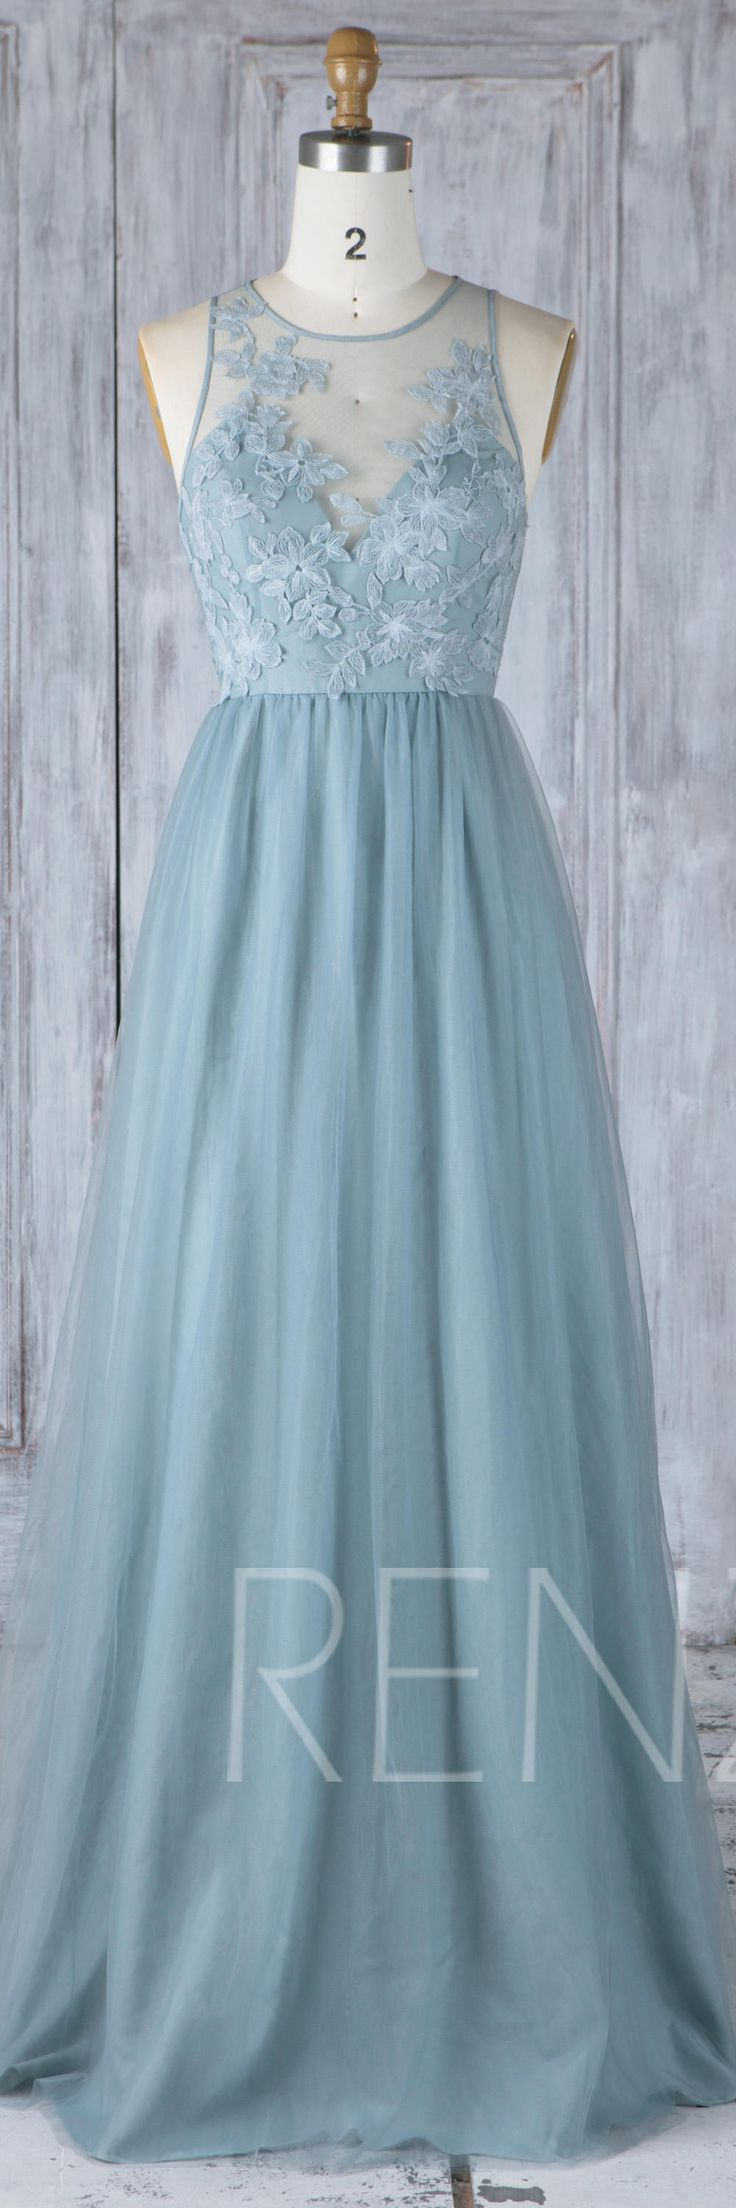 Dusty Blue Tulle Bridesmaid Dress, Sexy Lace Illusion Wedding Dress, Boat Neck Prom Dress,Key Hole Back Evening Dress Floor Length